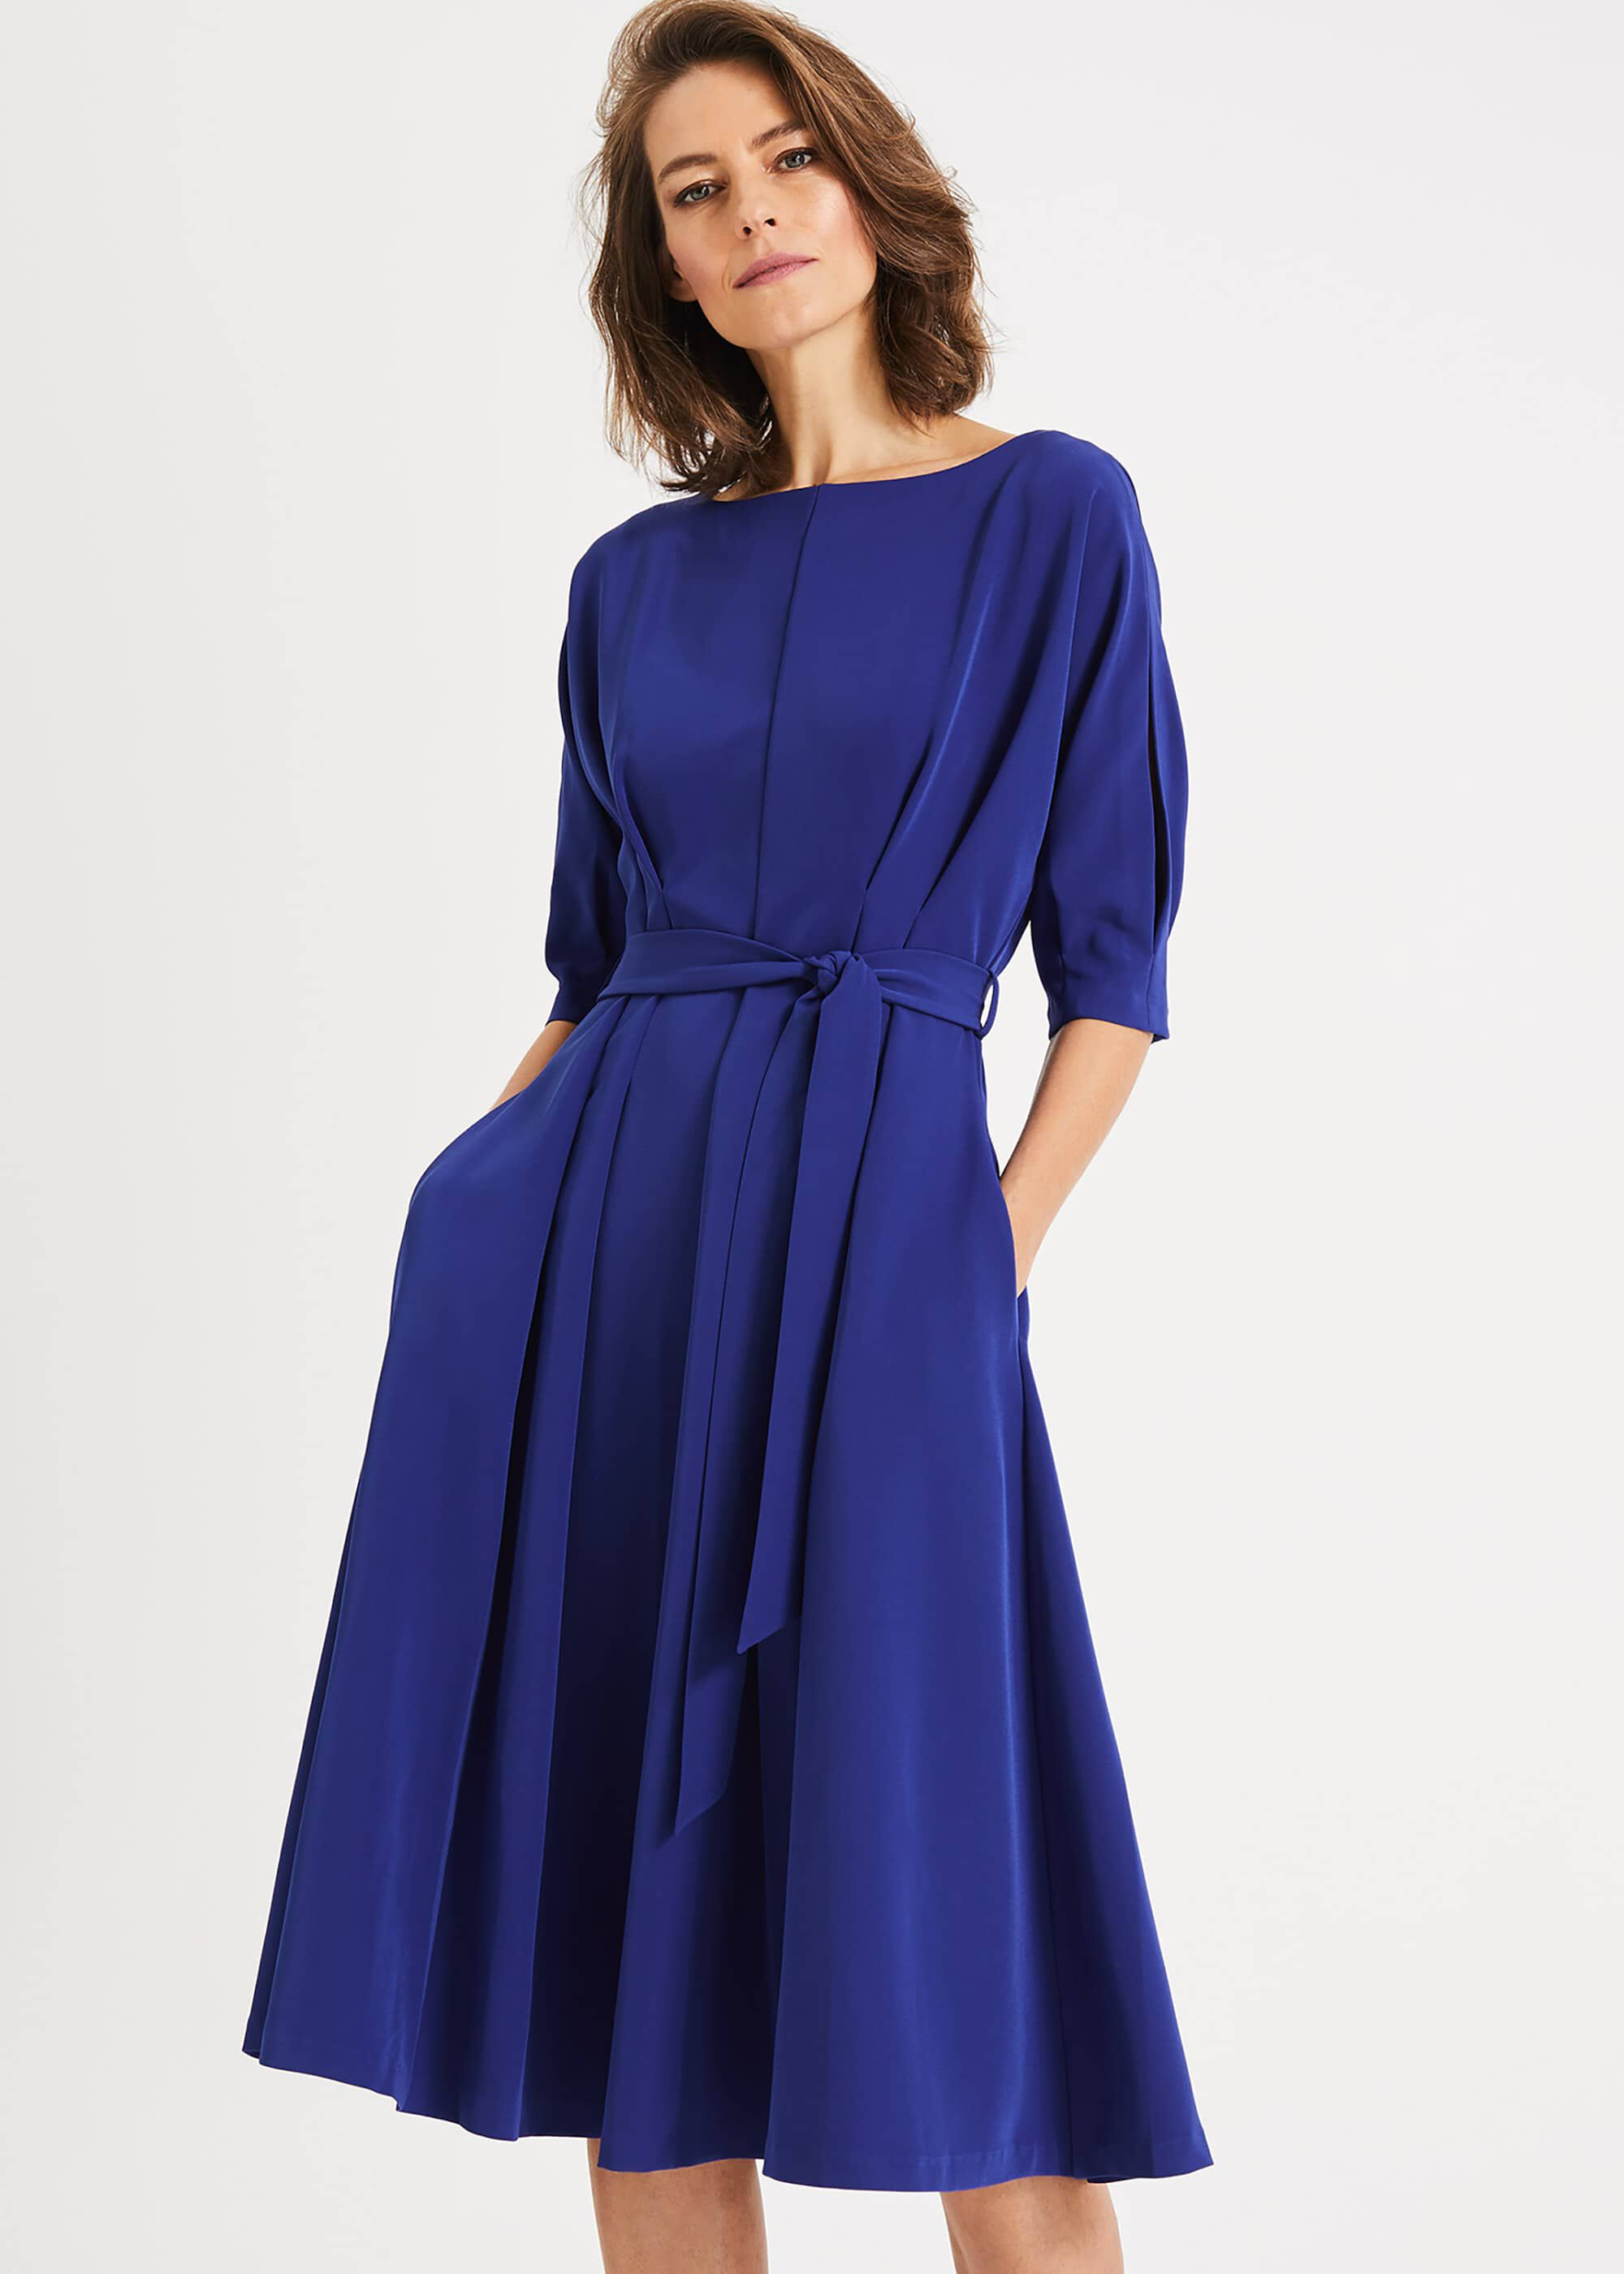 Phase Eight Cleo Tie Waist Dress, Blue, Fit & Flare